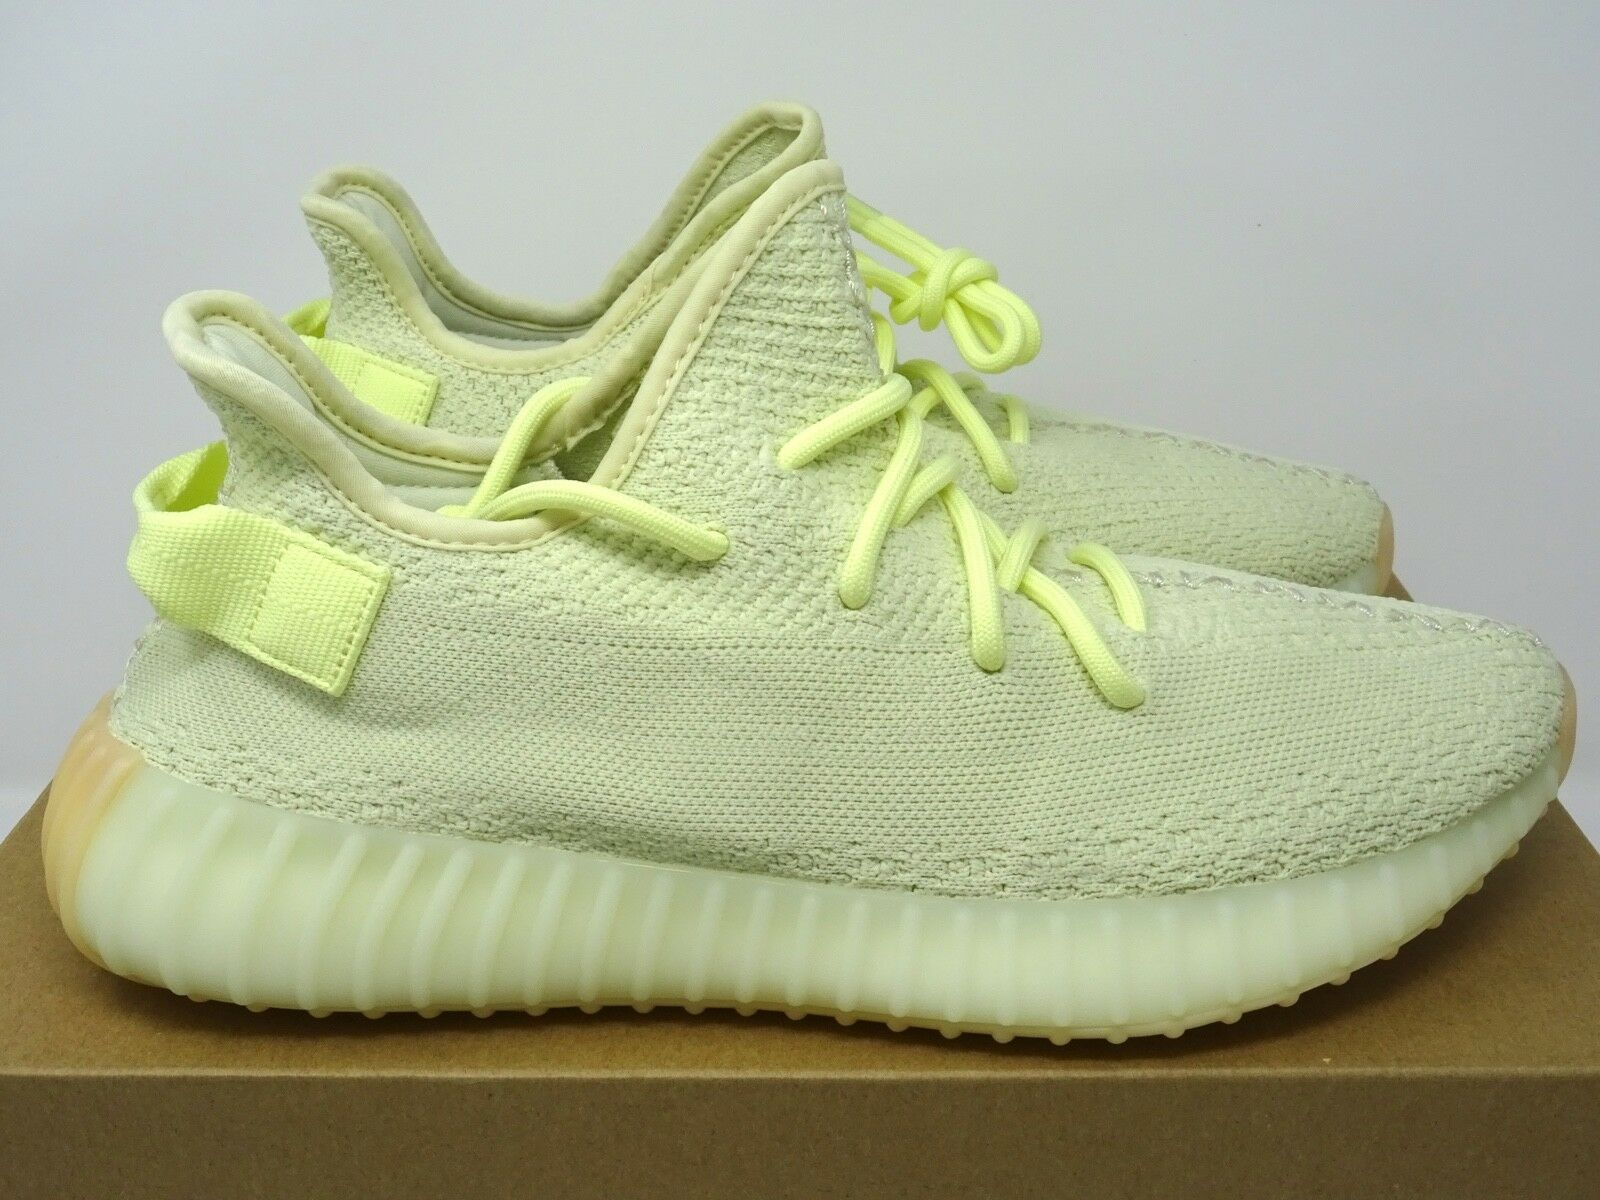 Adidas Yeezy Boost 350 V2 Butter Yellow US